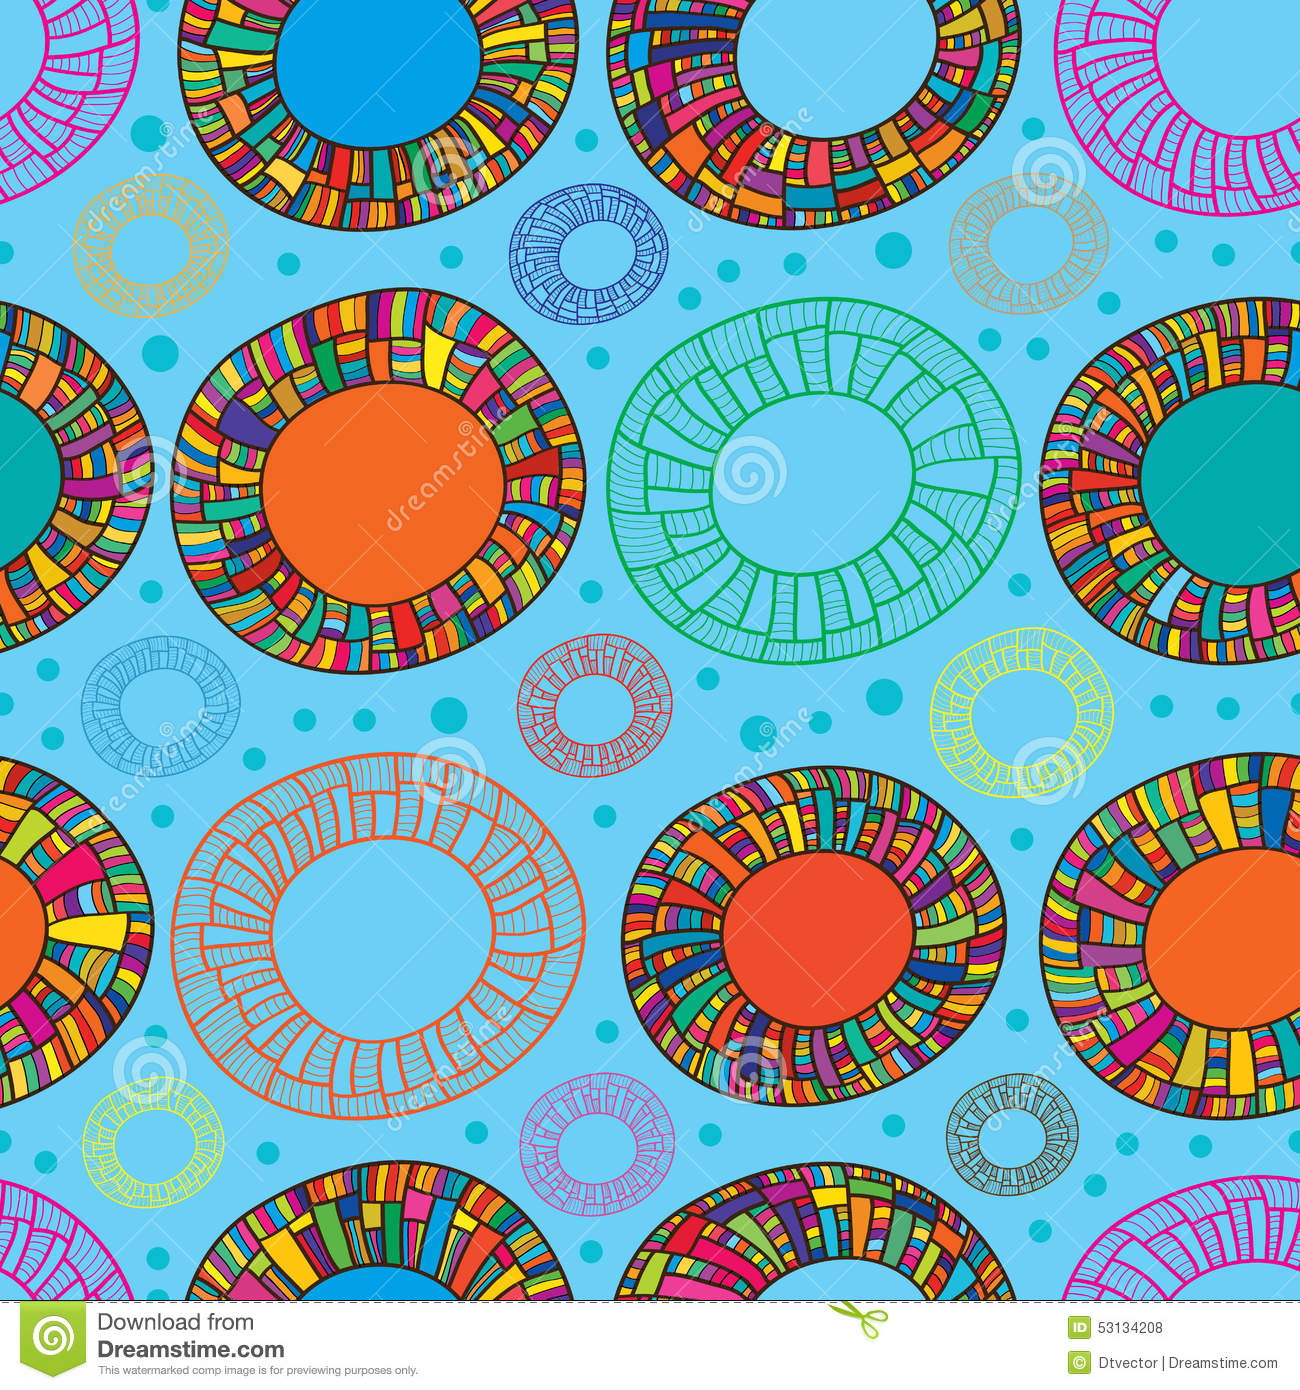 Happy Color happy color donut seamless pattern stock vector - image: 53134208